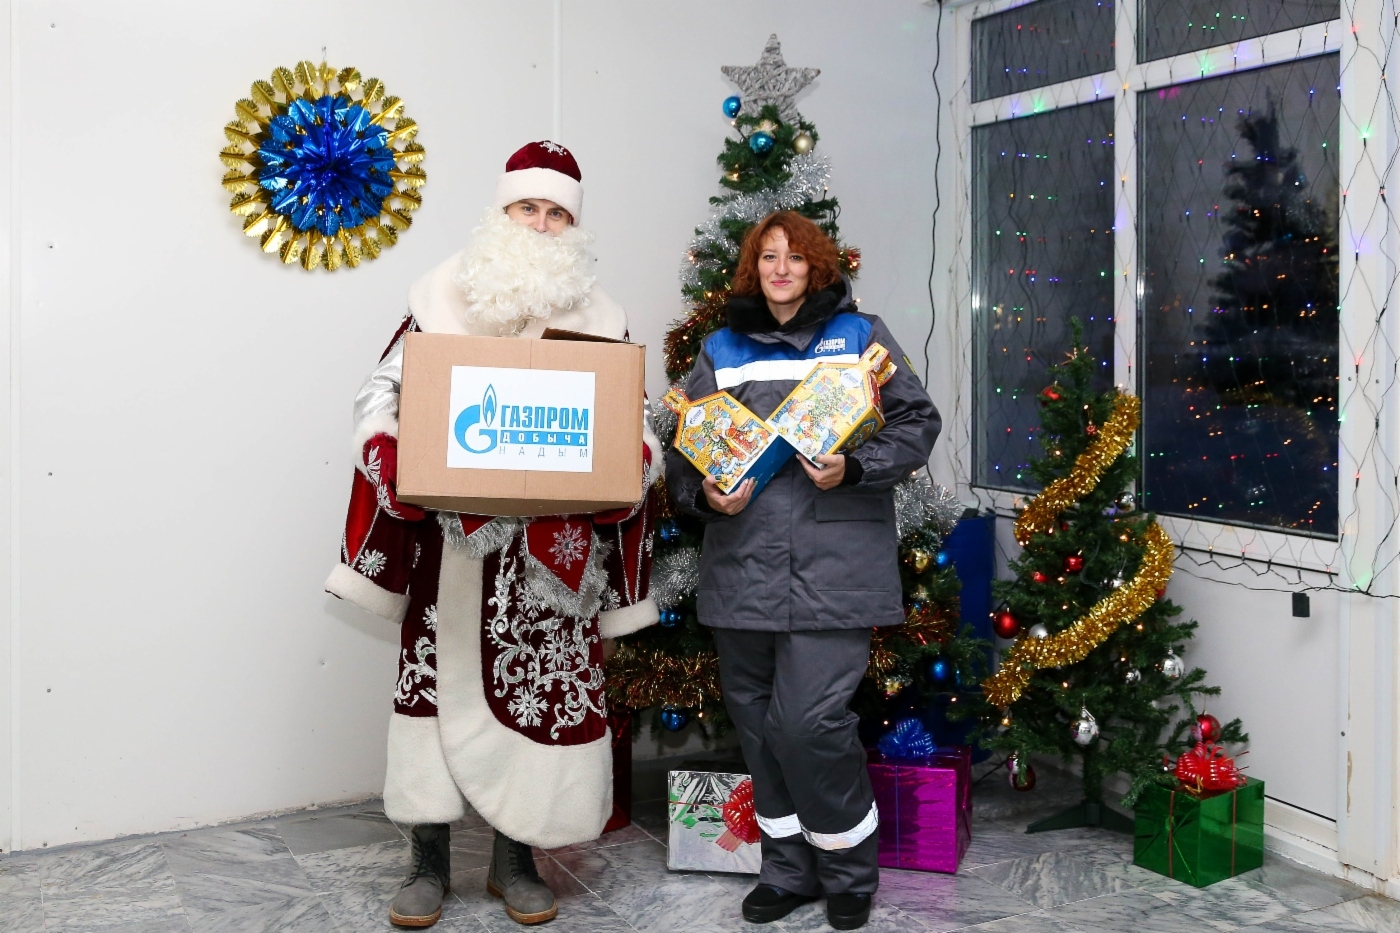 Gazprom will decide who's been naughty or nice. (Gazprom)